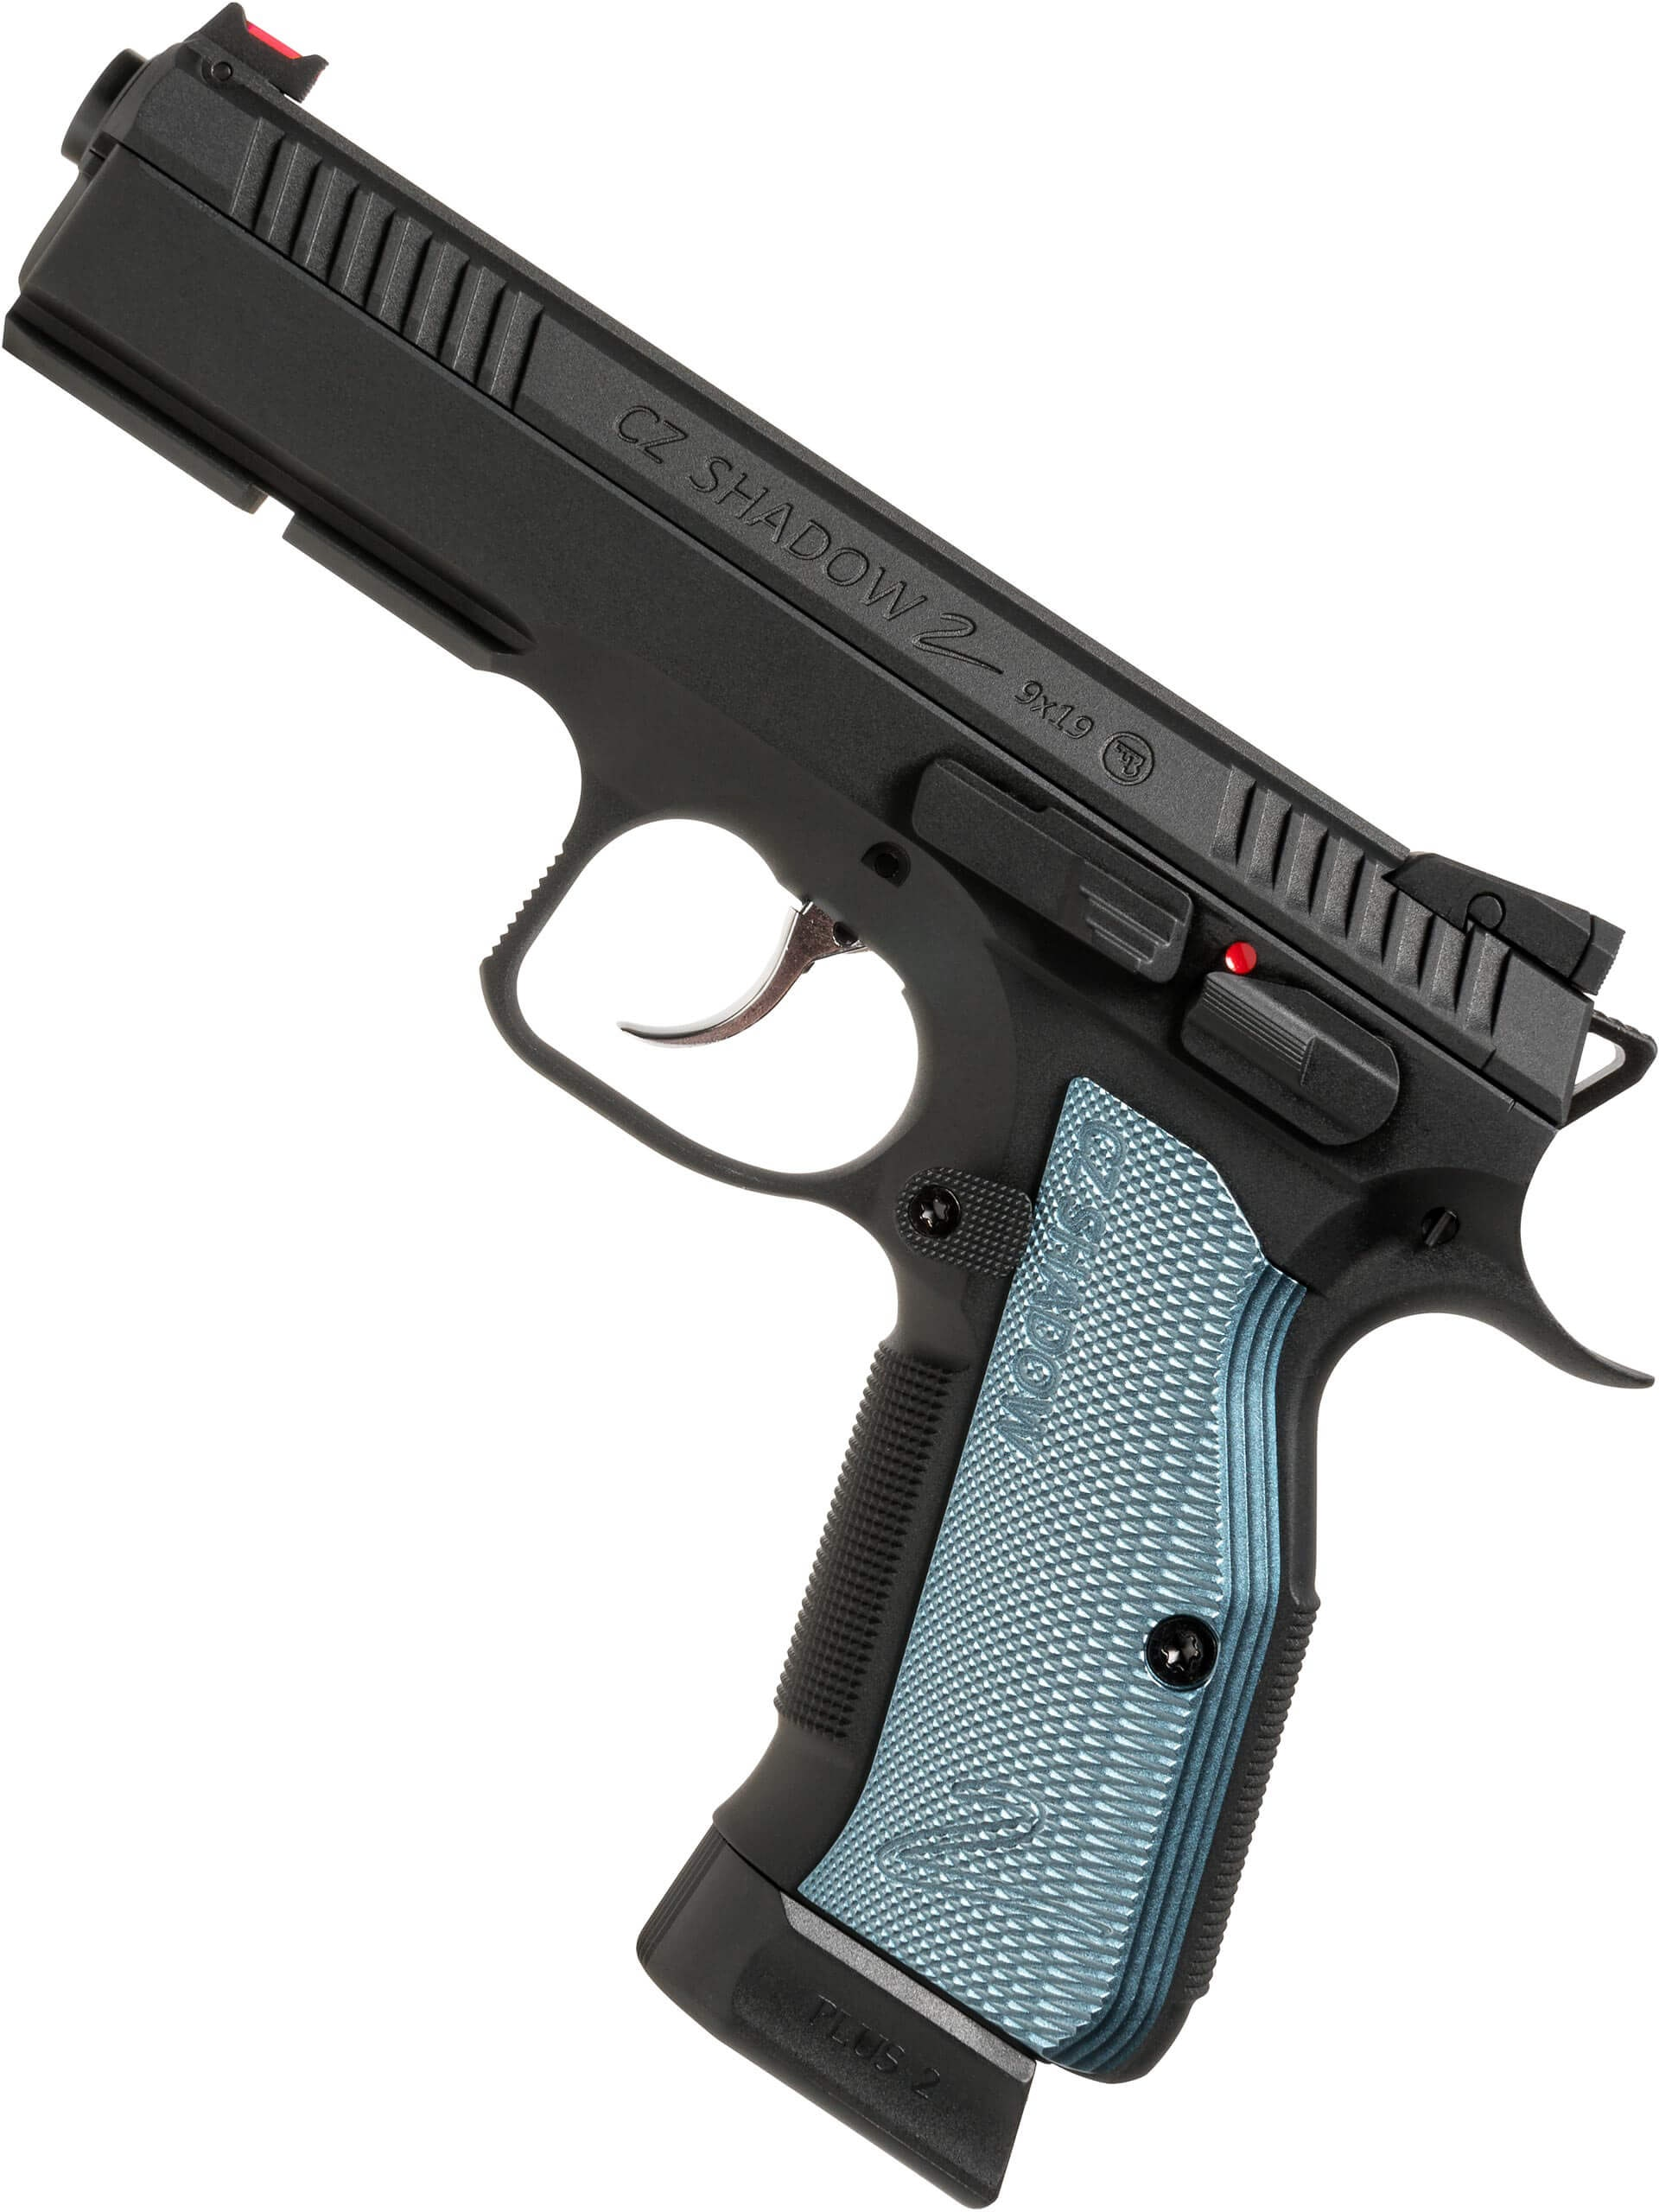 ASG CZ Shadow 2 CO2 Pistol